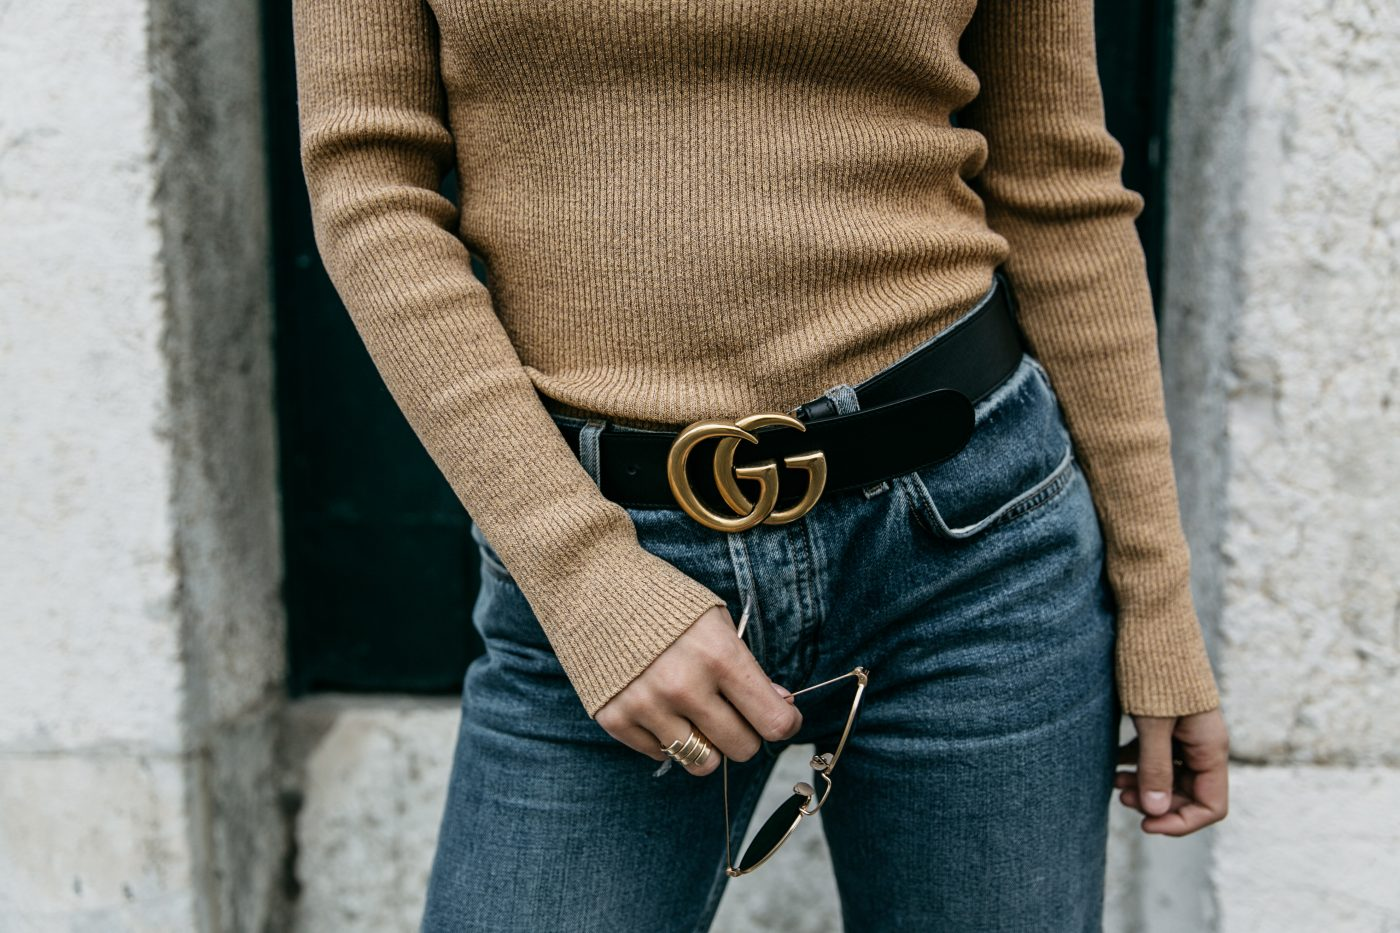 Metallic_Sweater-Cameo_The_Label-Melie-Lisboa-Denim-Topshop-Gucci_Belt-Saint_Laurent_Sneakers-Outfit-Street_Style-69